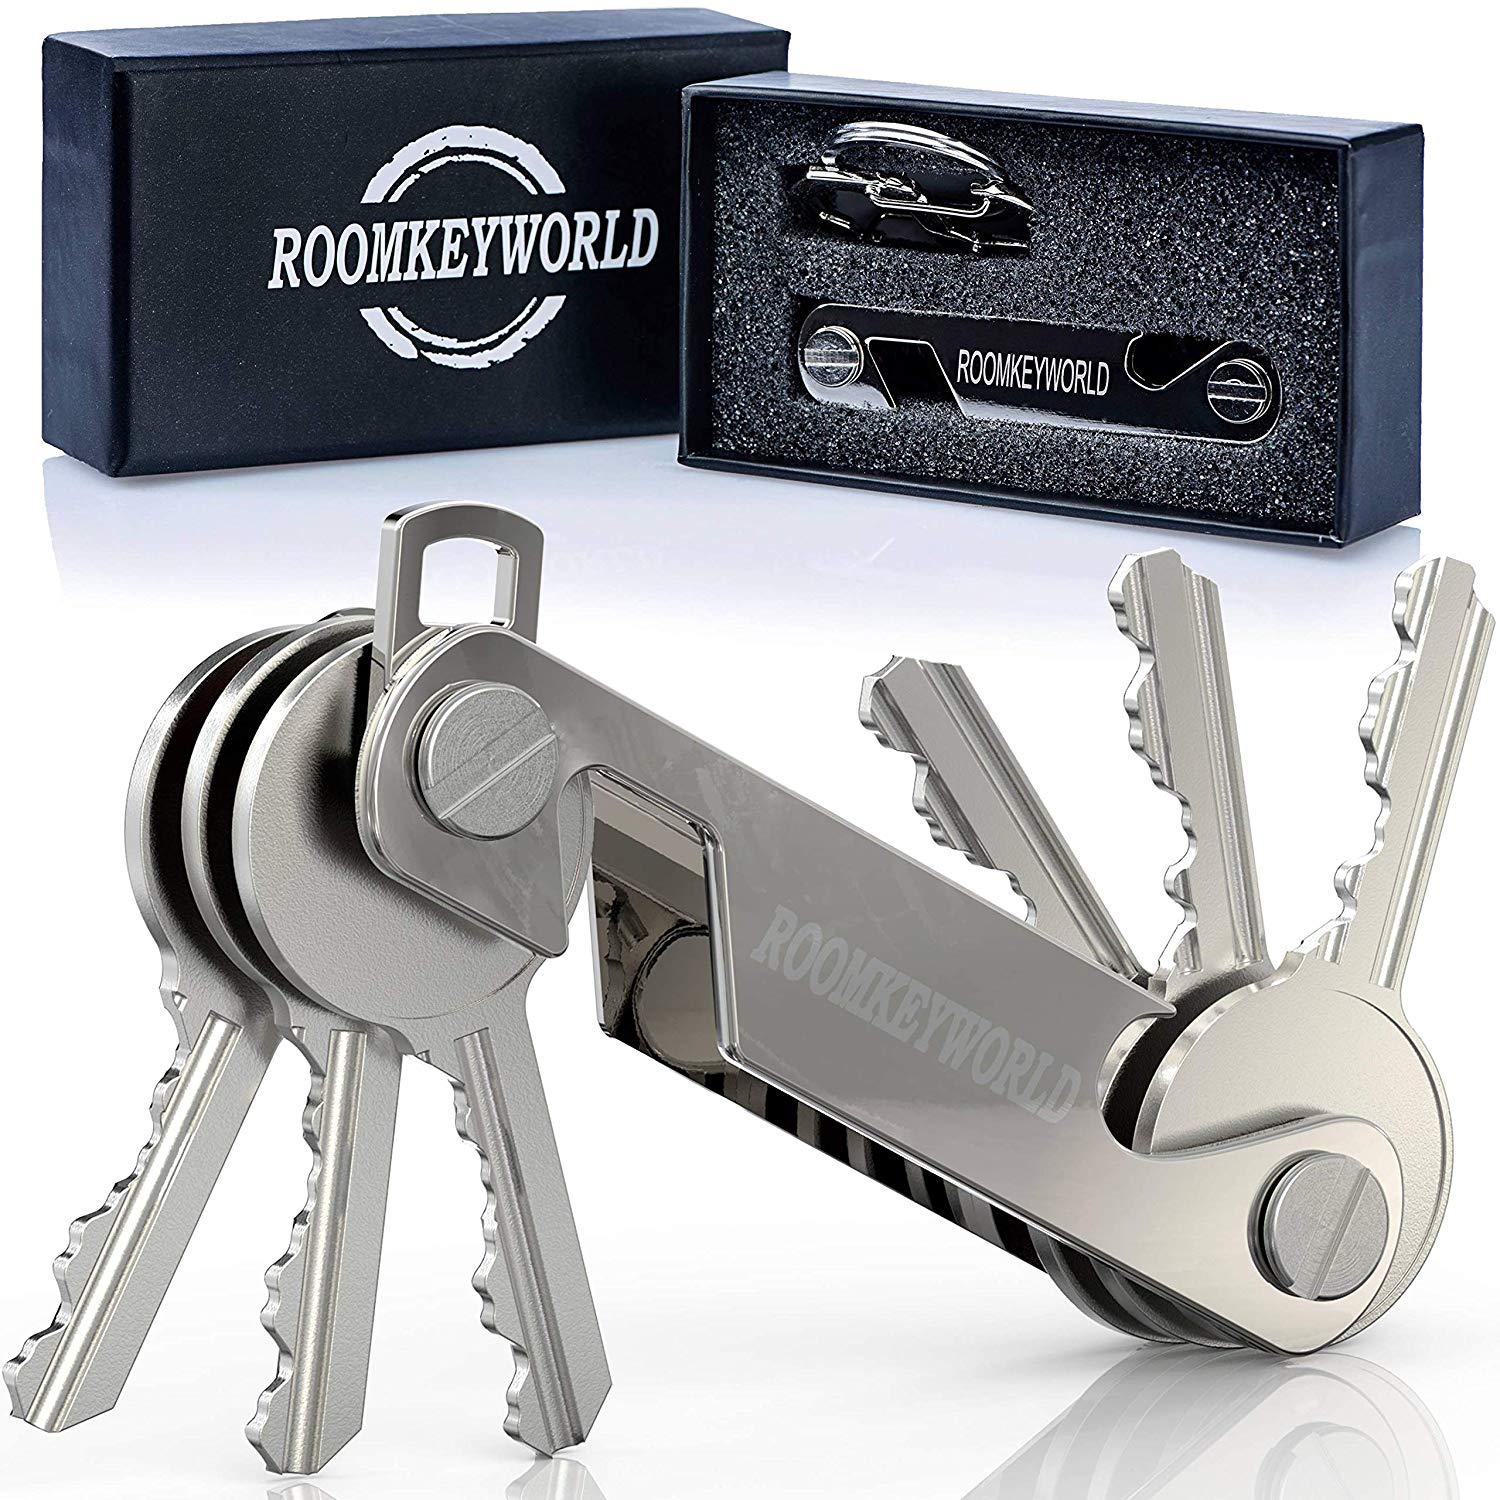 Compact Key Holder Keychain | Premium Pocket Key Organizer Key Smart with Phone Stand | Bottle Opener | Bonus Include Dual Spring S-Shaped Hook and 6 x Washer and Key Ring | Silver|